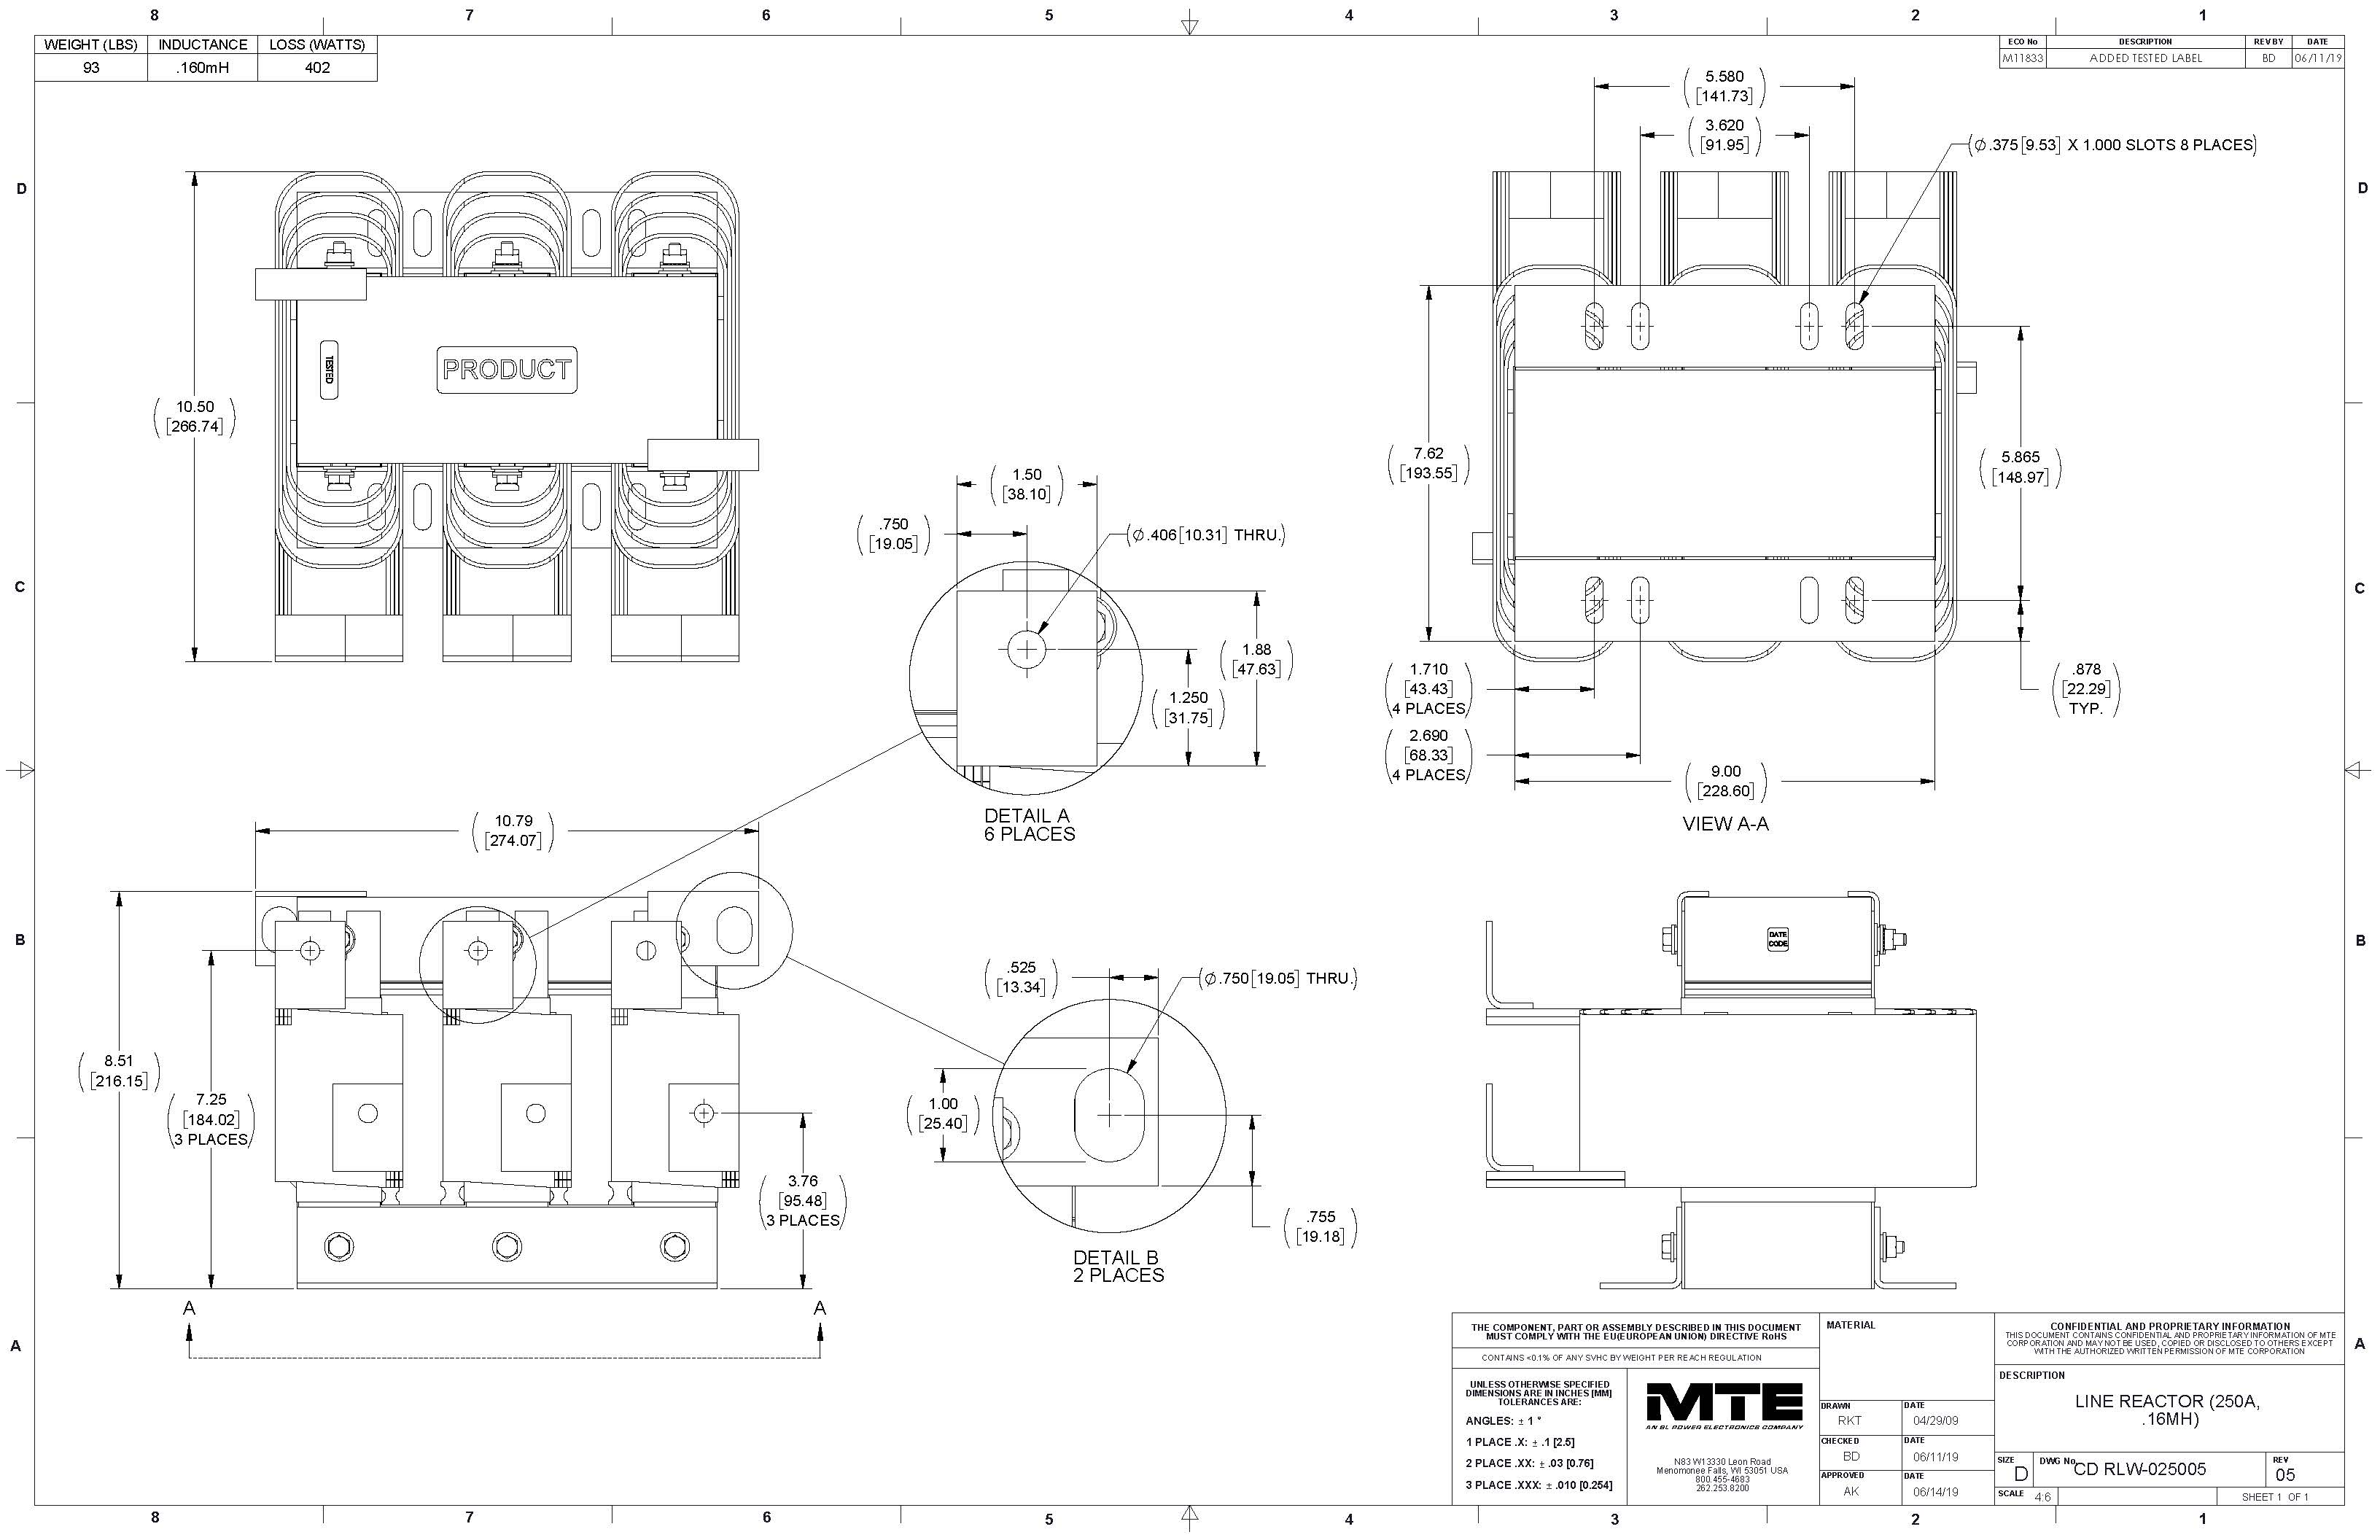 Image of an MTE Reactor RLW-025005